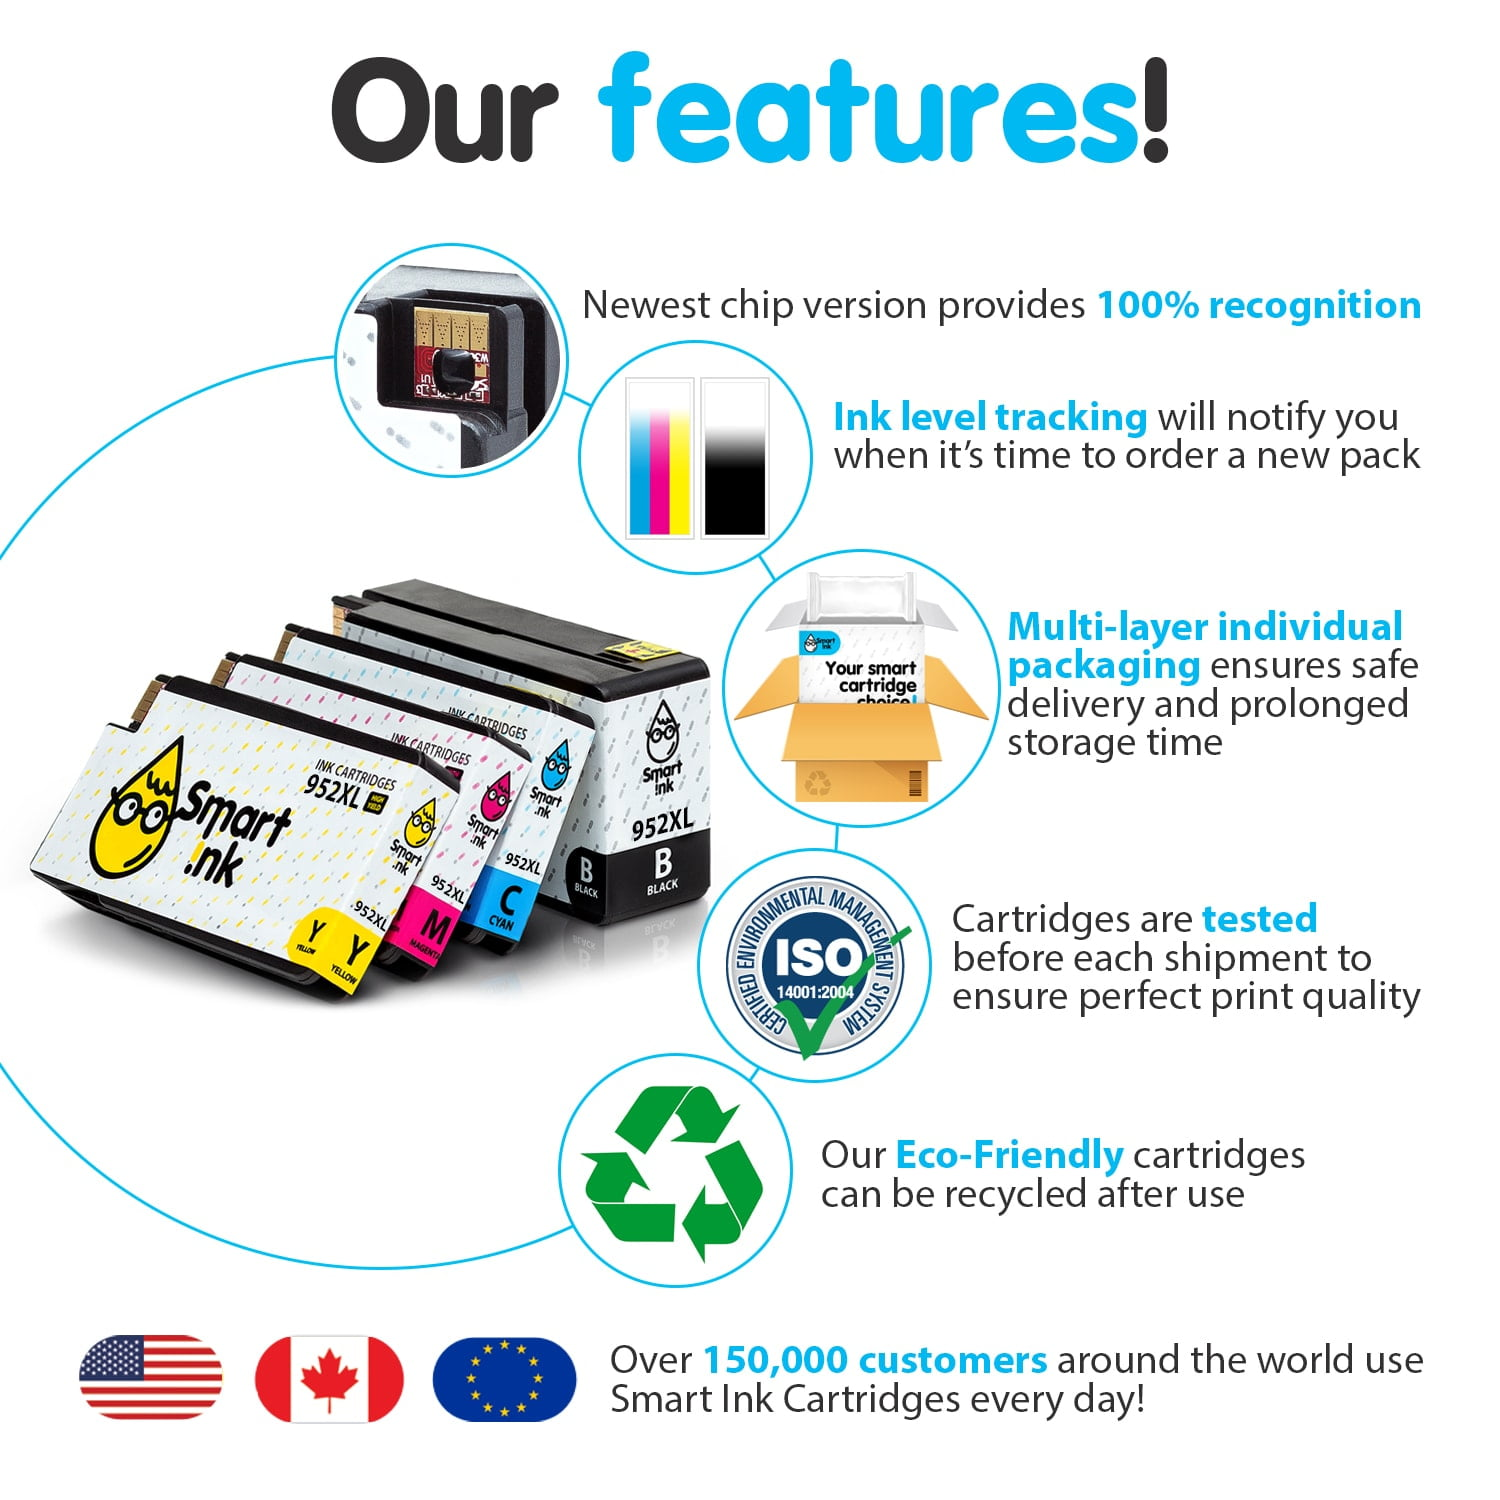 952XL. Smart Ink Cartridge Replacement for HP 952 XL (4 pack), Compatible